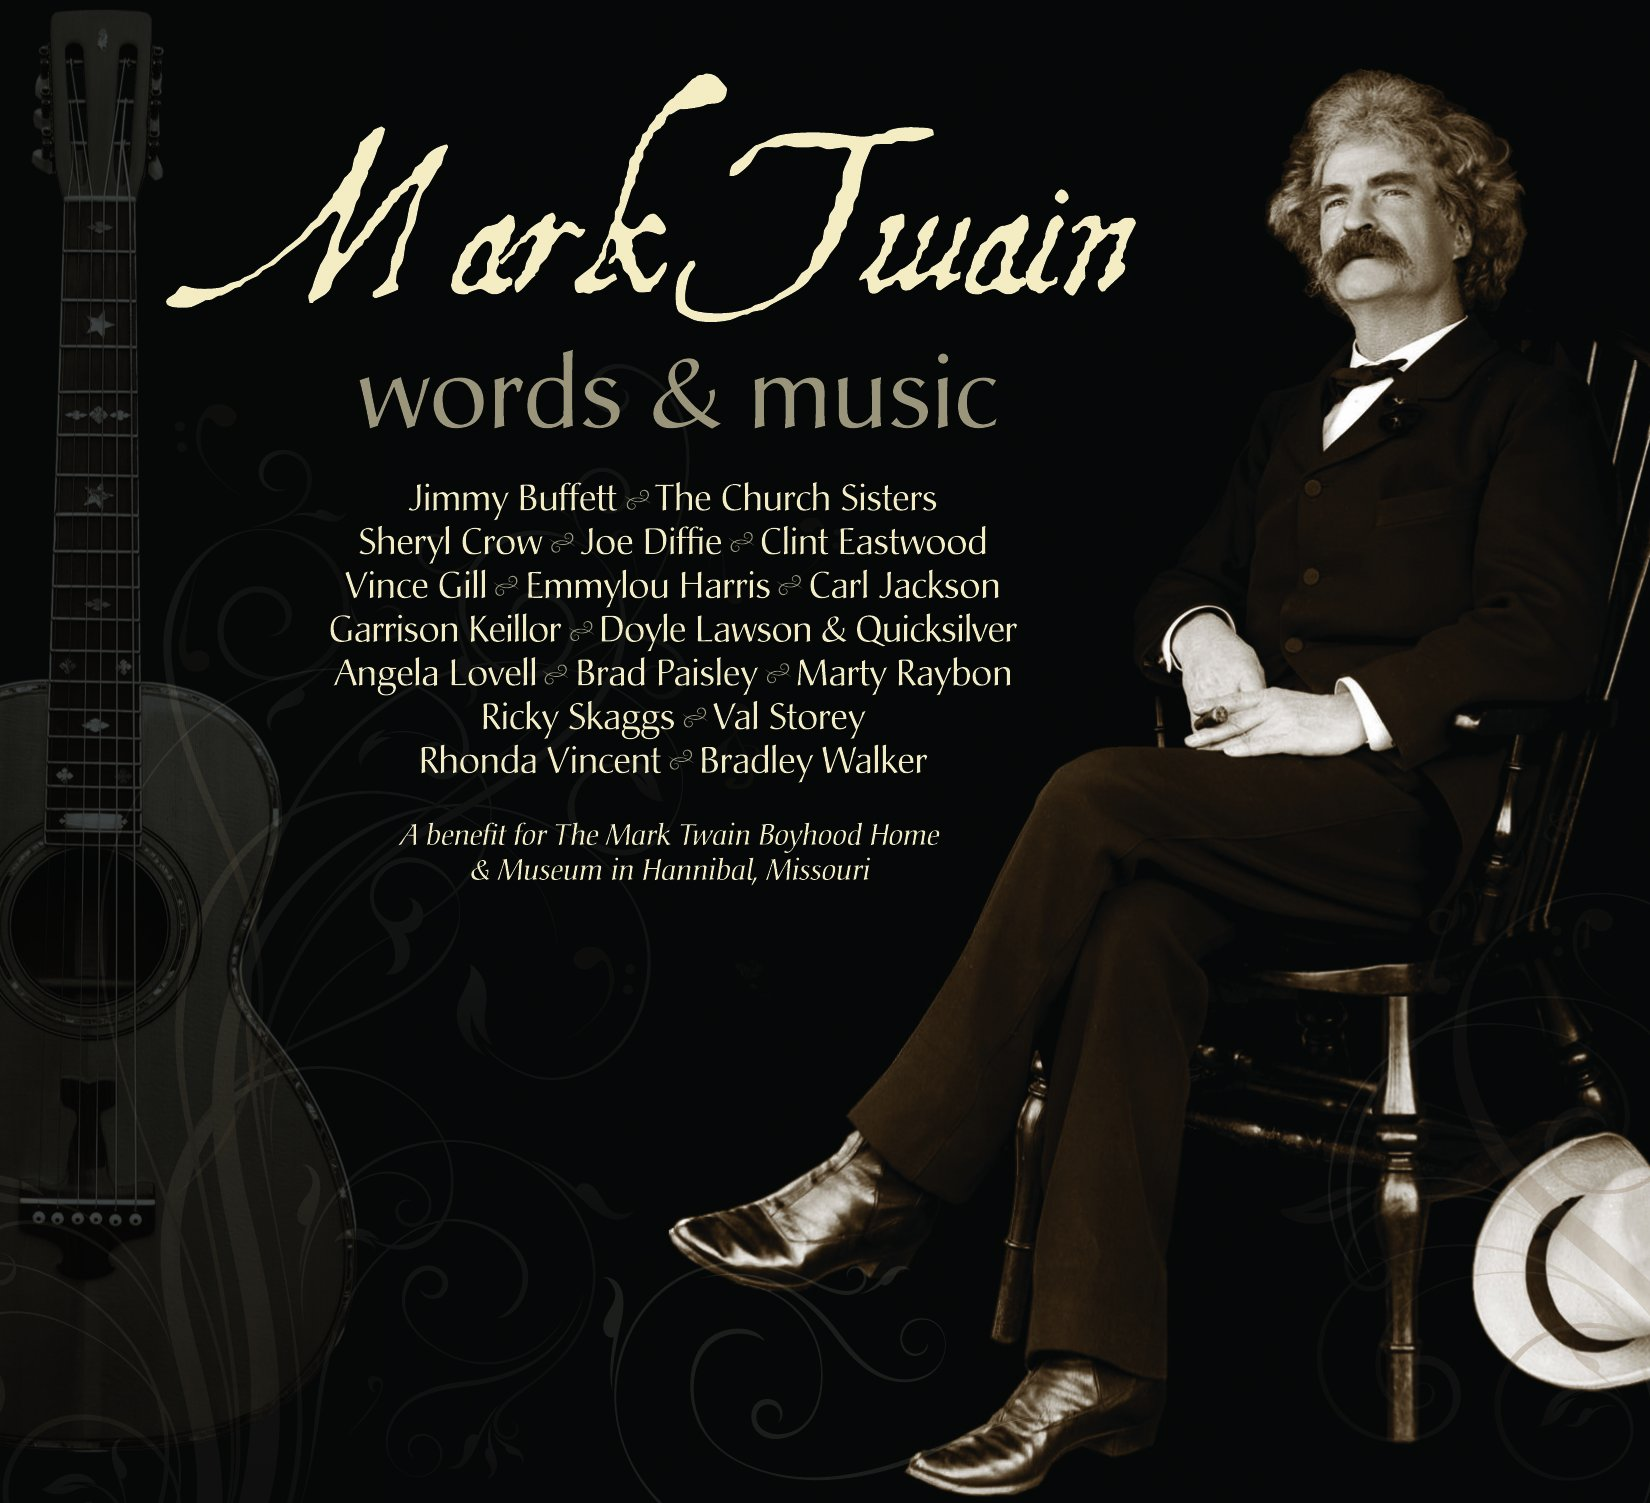 Mark Twain Words and Music by Mailboat Records